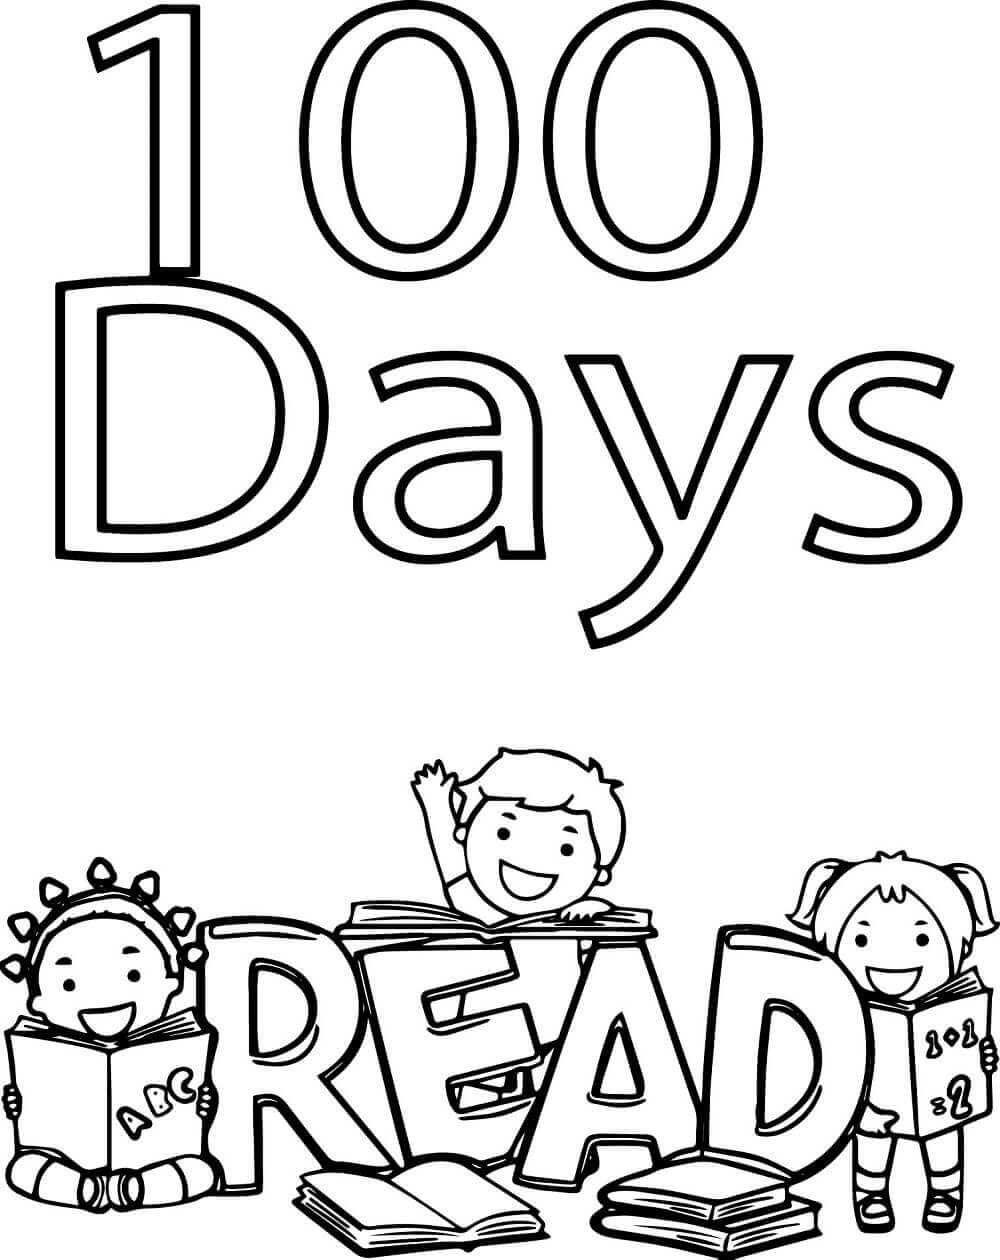 100 Days Coloring Pages : coloring, pages, Printable, School, Coloring, Pages